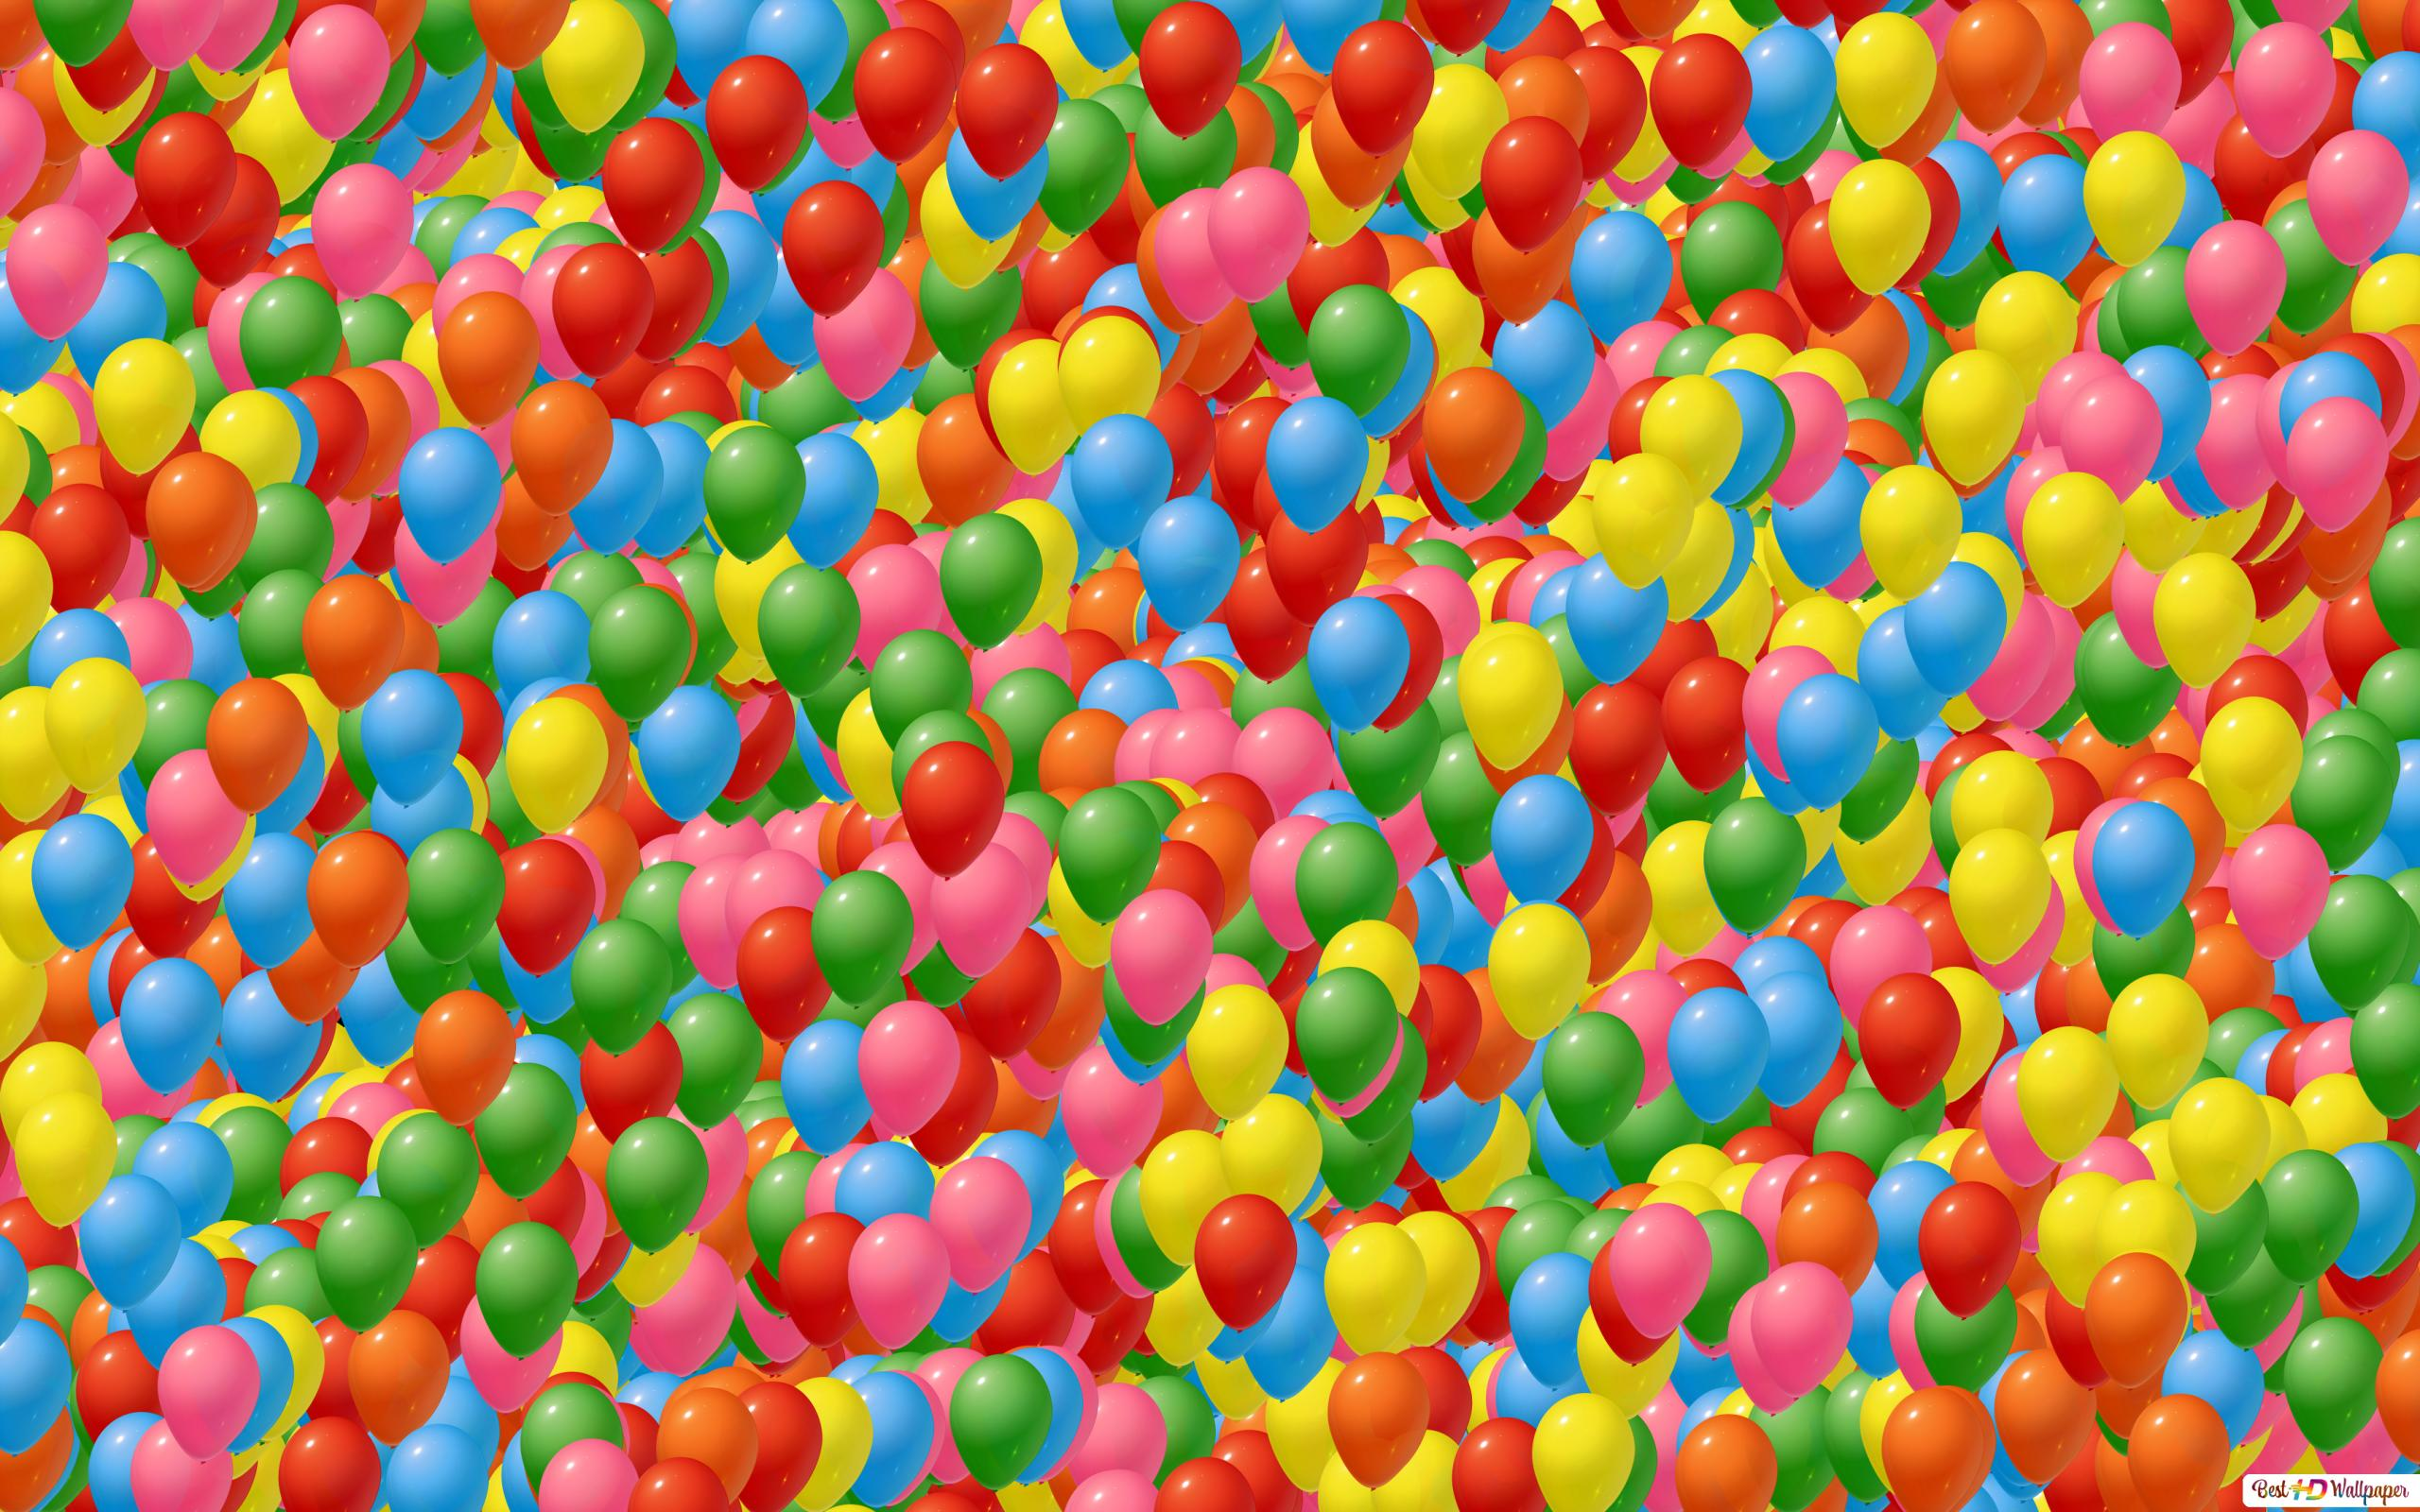 Sea Of Colorful Balloon Hd Wallpaper Download